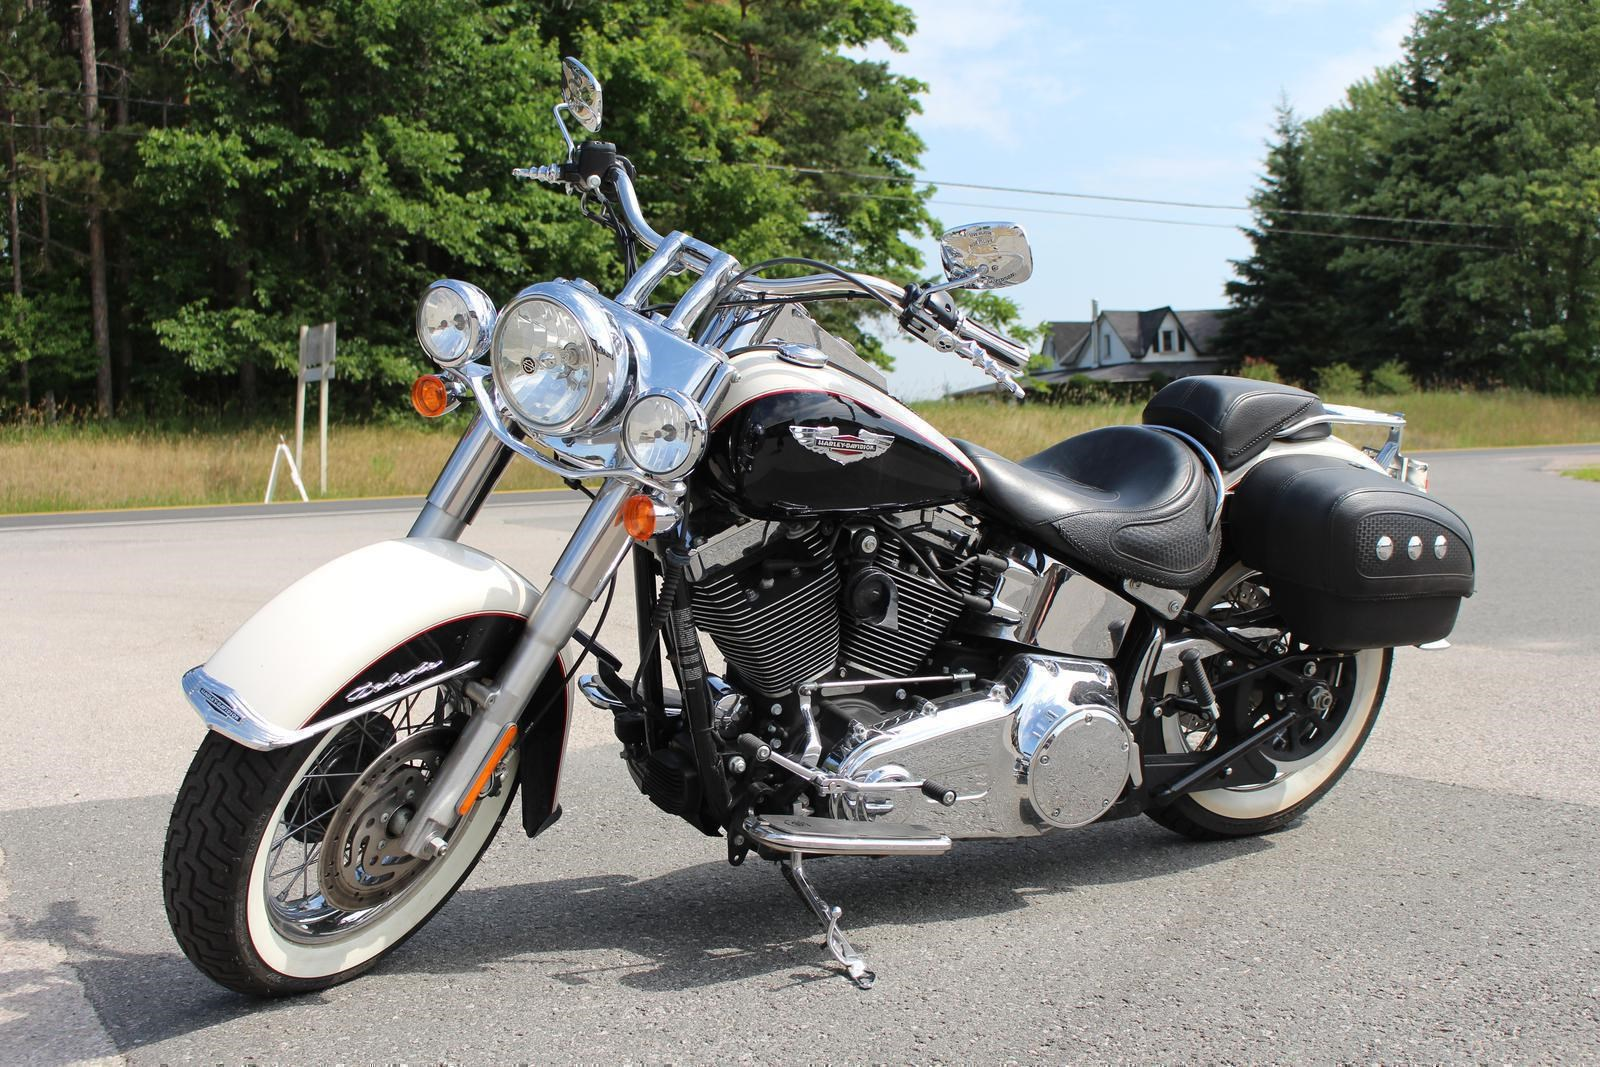 harley davidson softail deluxe flstn 2011 used motorcycle for sale in lakefield ontario. Black Bedroom Furniture Sets. Home Design Ideas